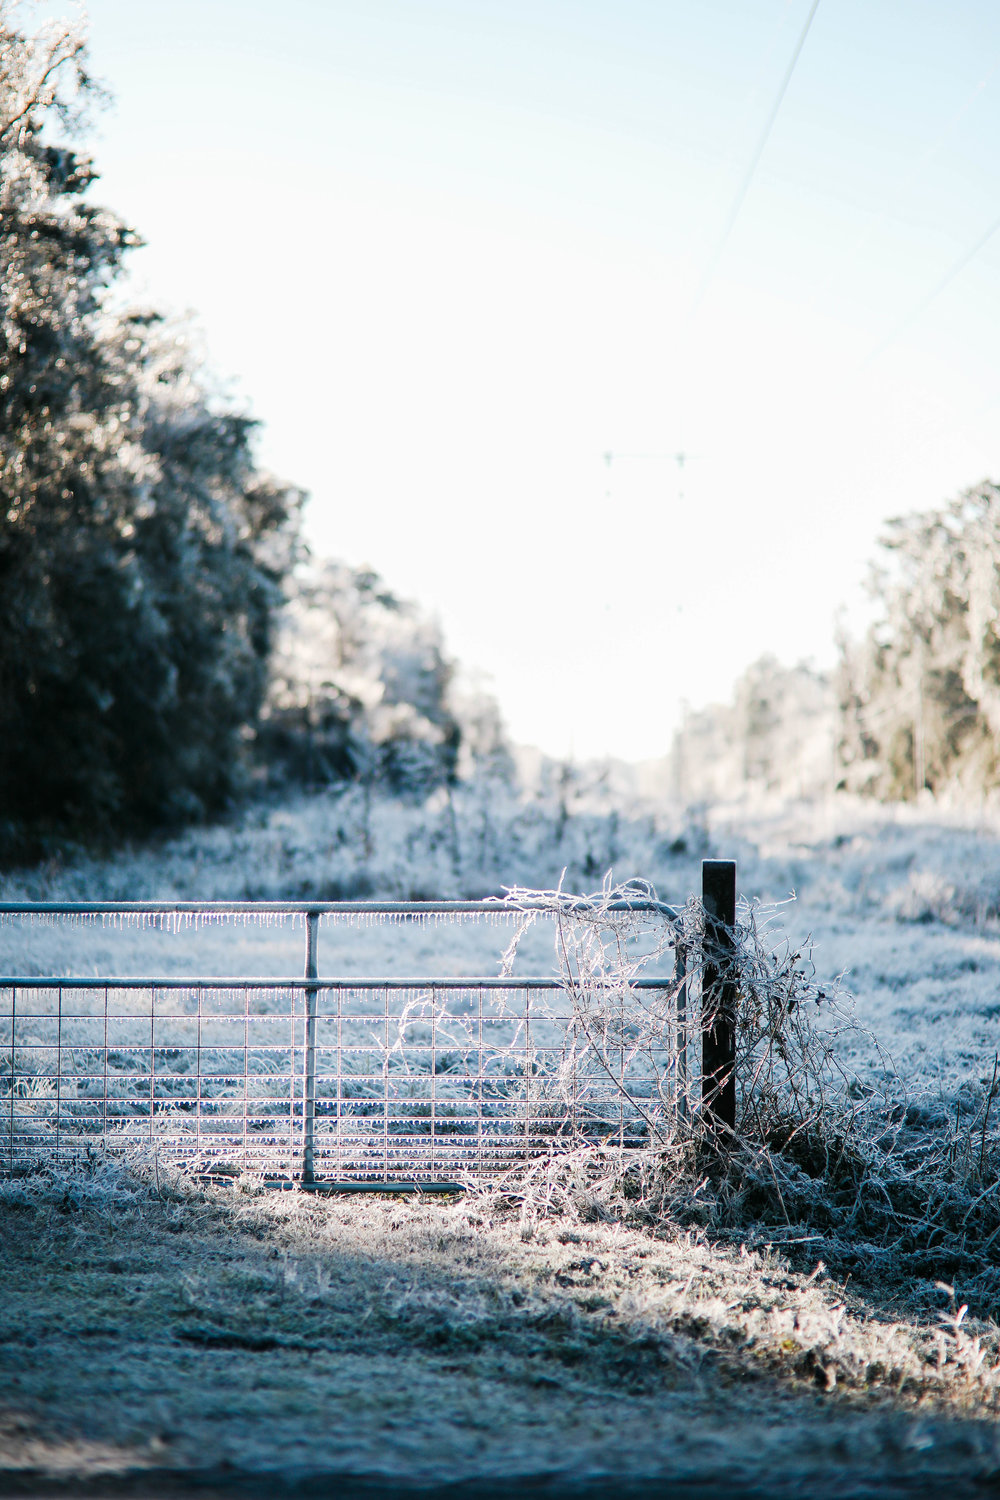 A fence is draped with ice and grass is covered in snow